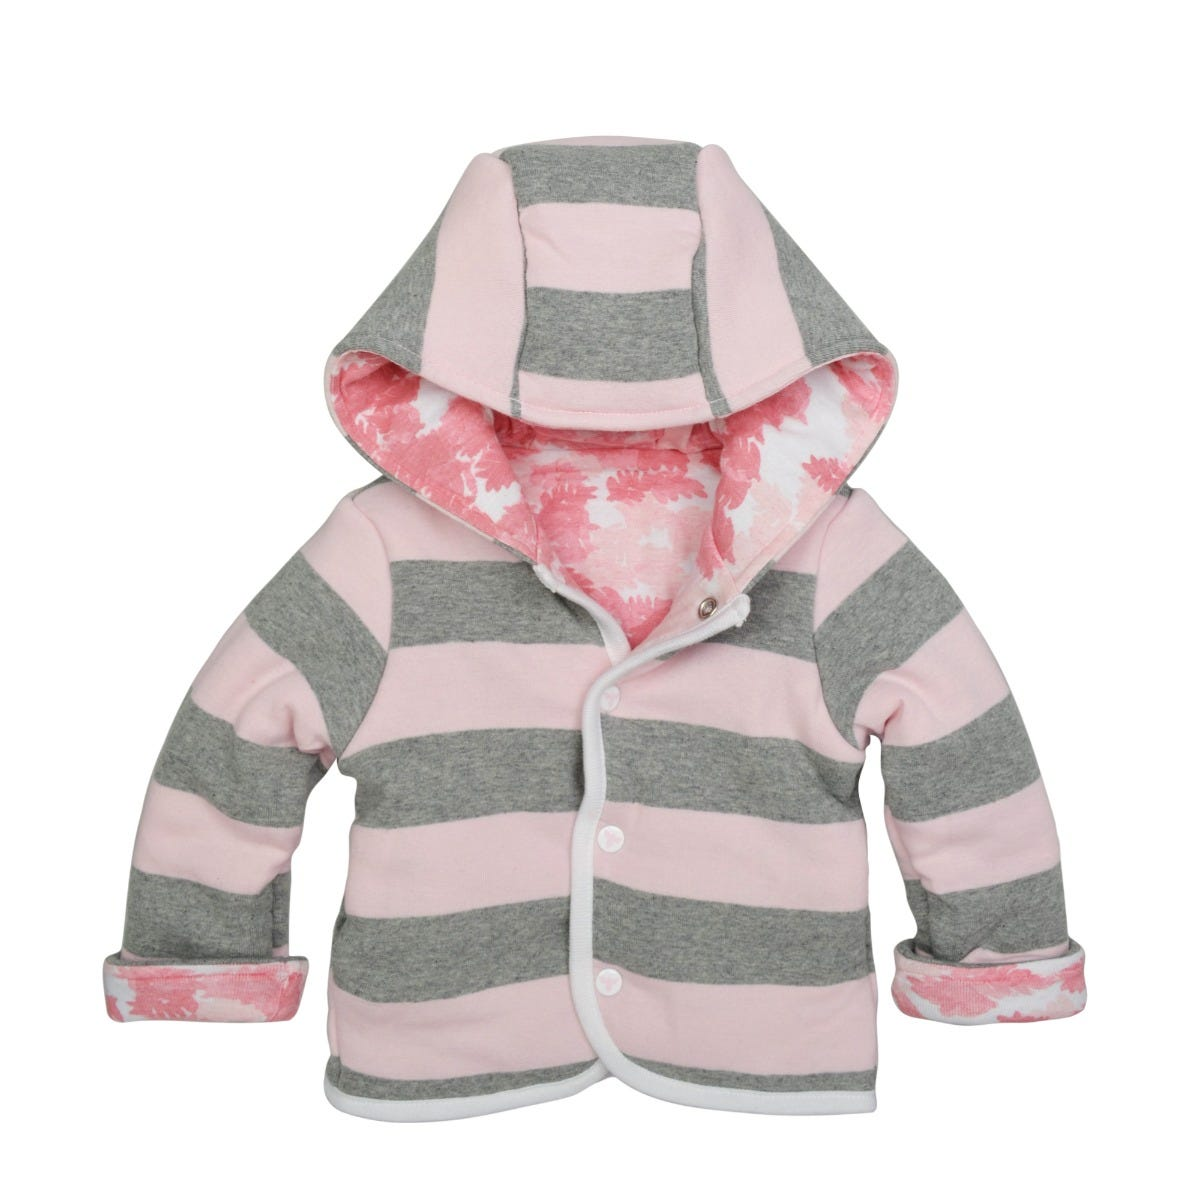 Burts Bees Baby baby-girls Sweatshirts Organic Cotton Lightweight Zip-up Jackets /& Hooded Coats